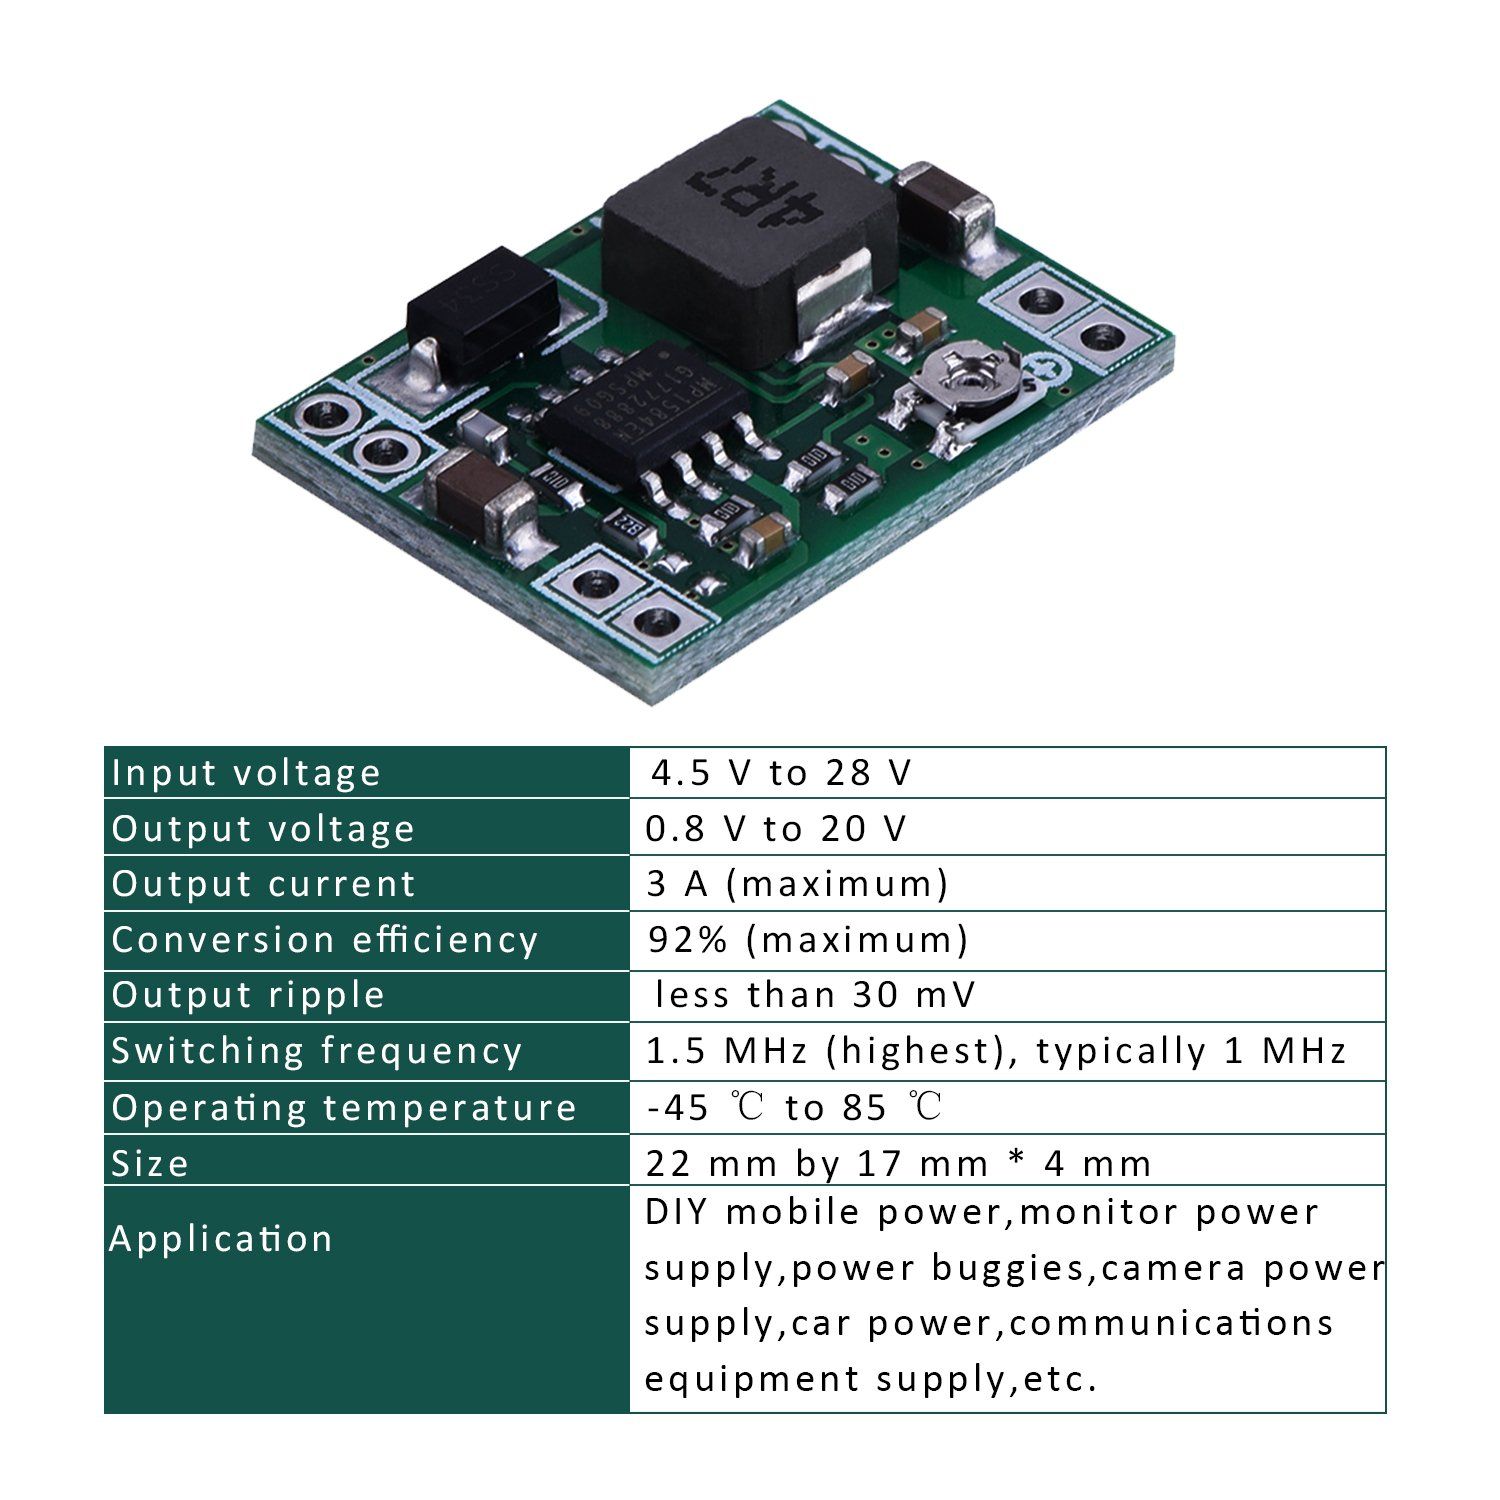 Eboot Mini Mp1584en Dc Buck Converter Adjustable Switching Power Supply Schematic 3a Voltage Regulator Based Step Down Module 24v To 12v 9v 5v 3v 6 Pack Electronics